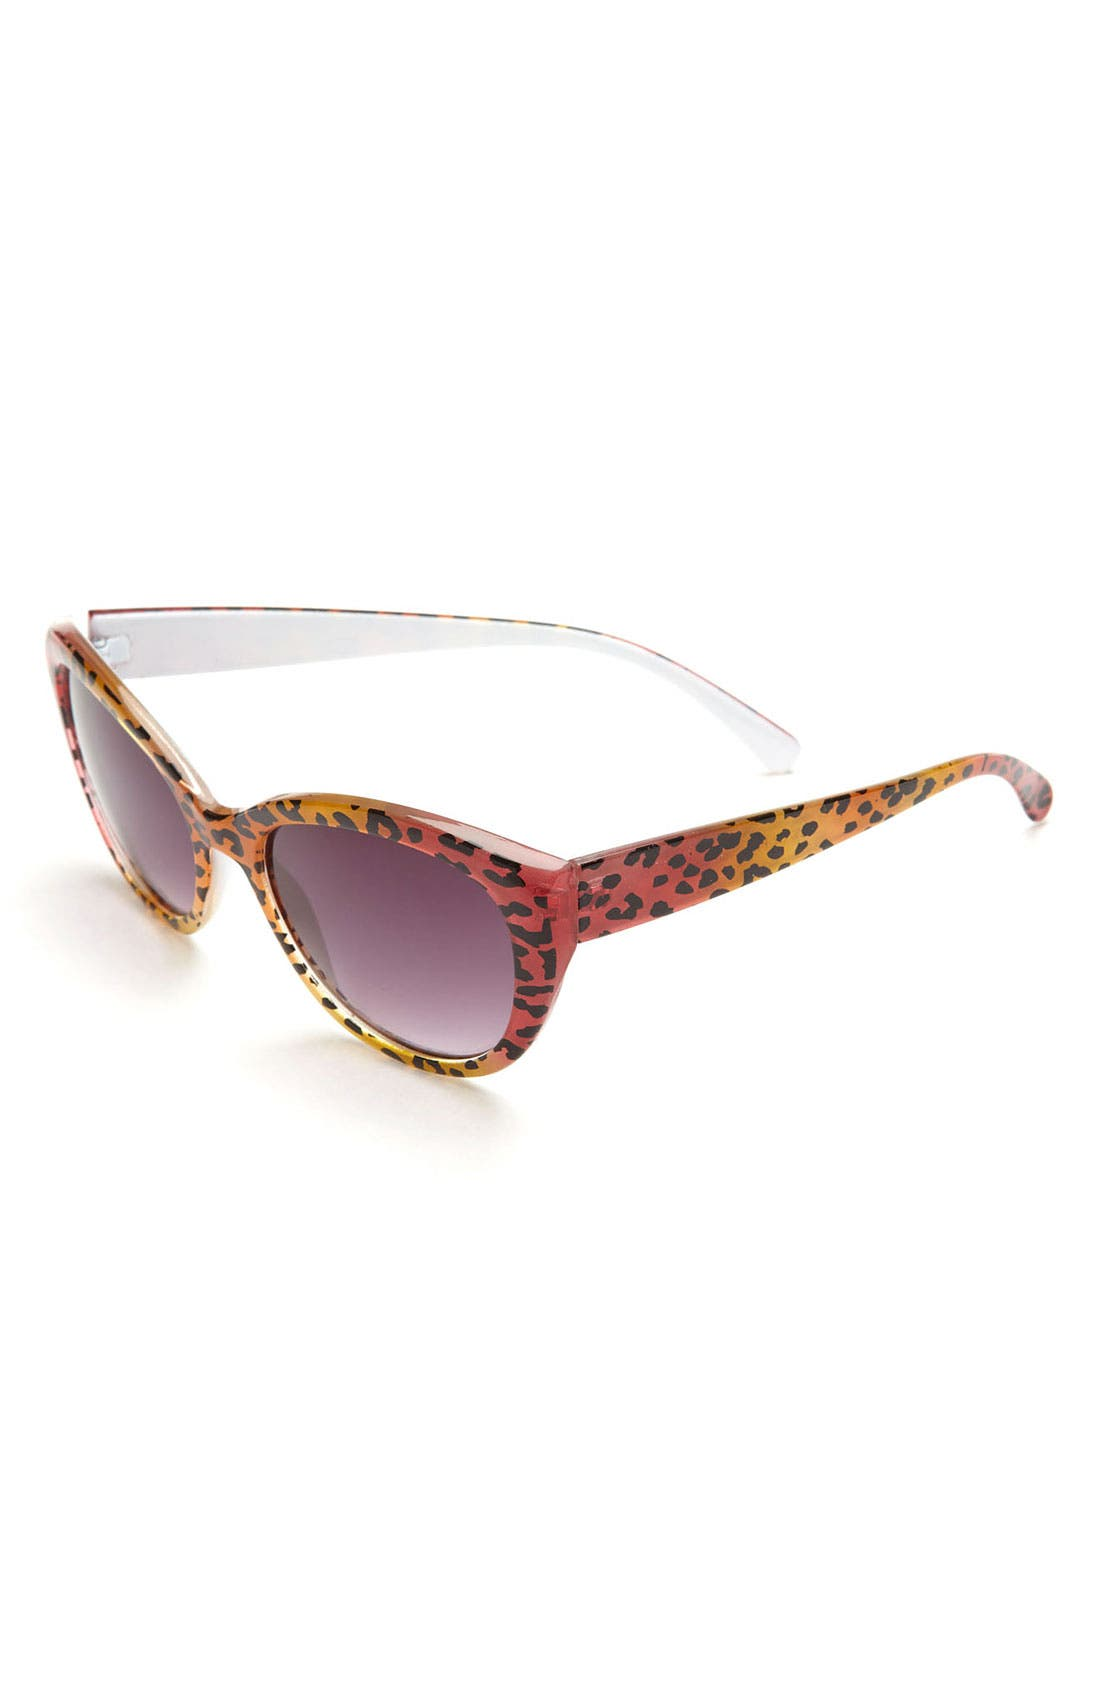 Alternate Image 1 Selected - Fantas Eyes Cat's Eye Sunglasses (Girls)